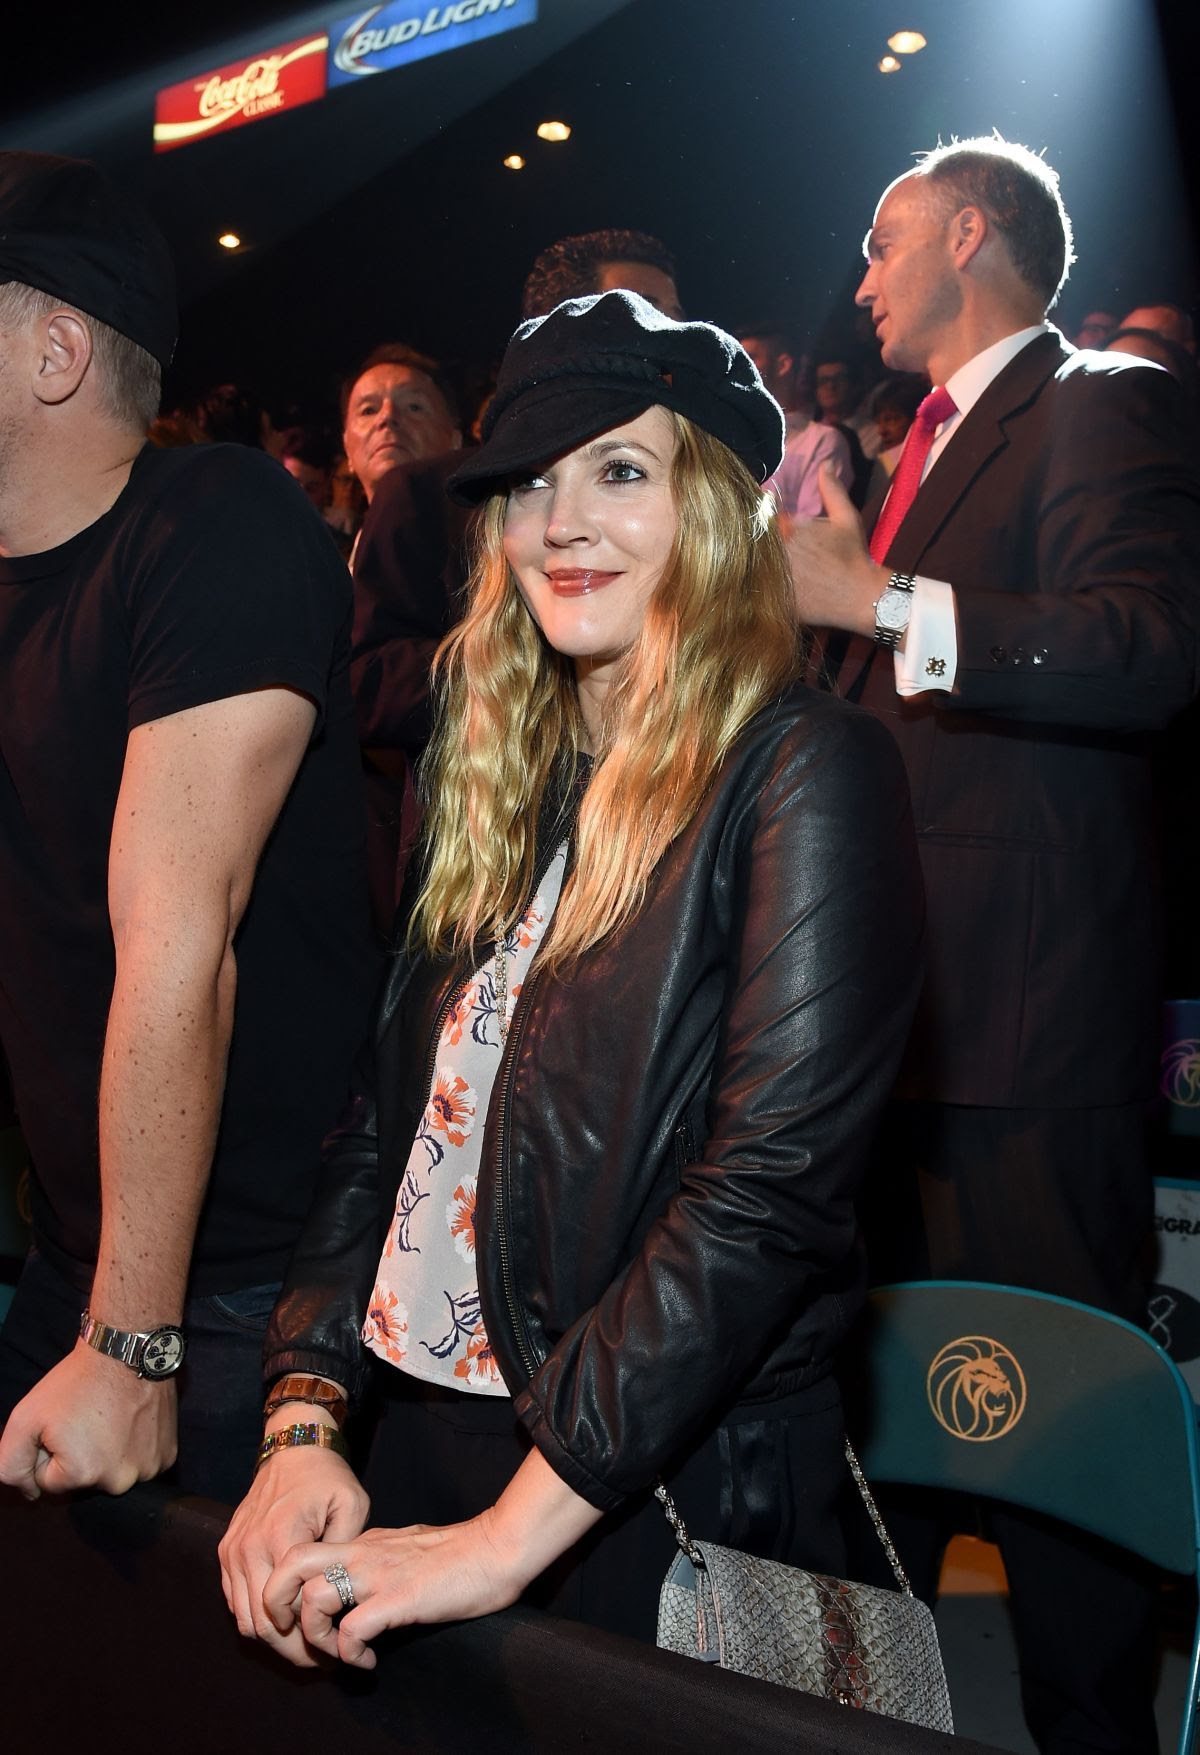 DREW BARRYMORE at Mayweather vs Pacquiao Boxing Match in Las Vegas